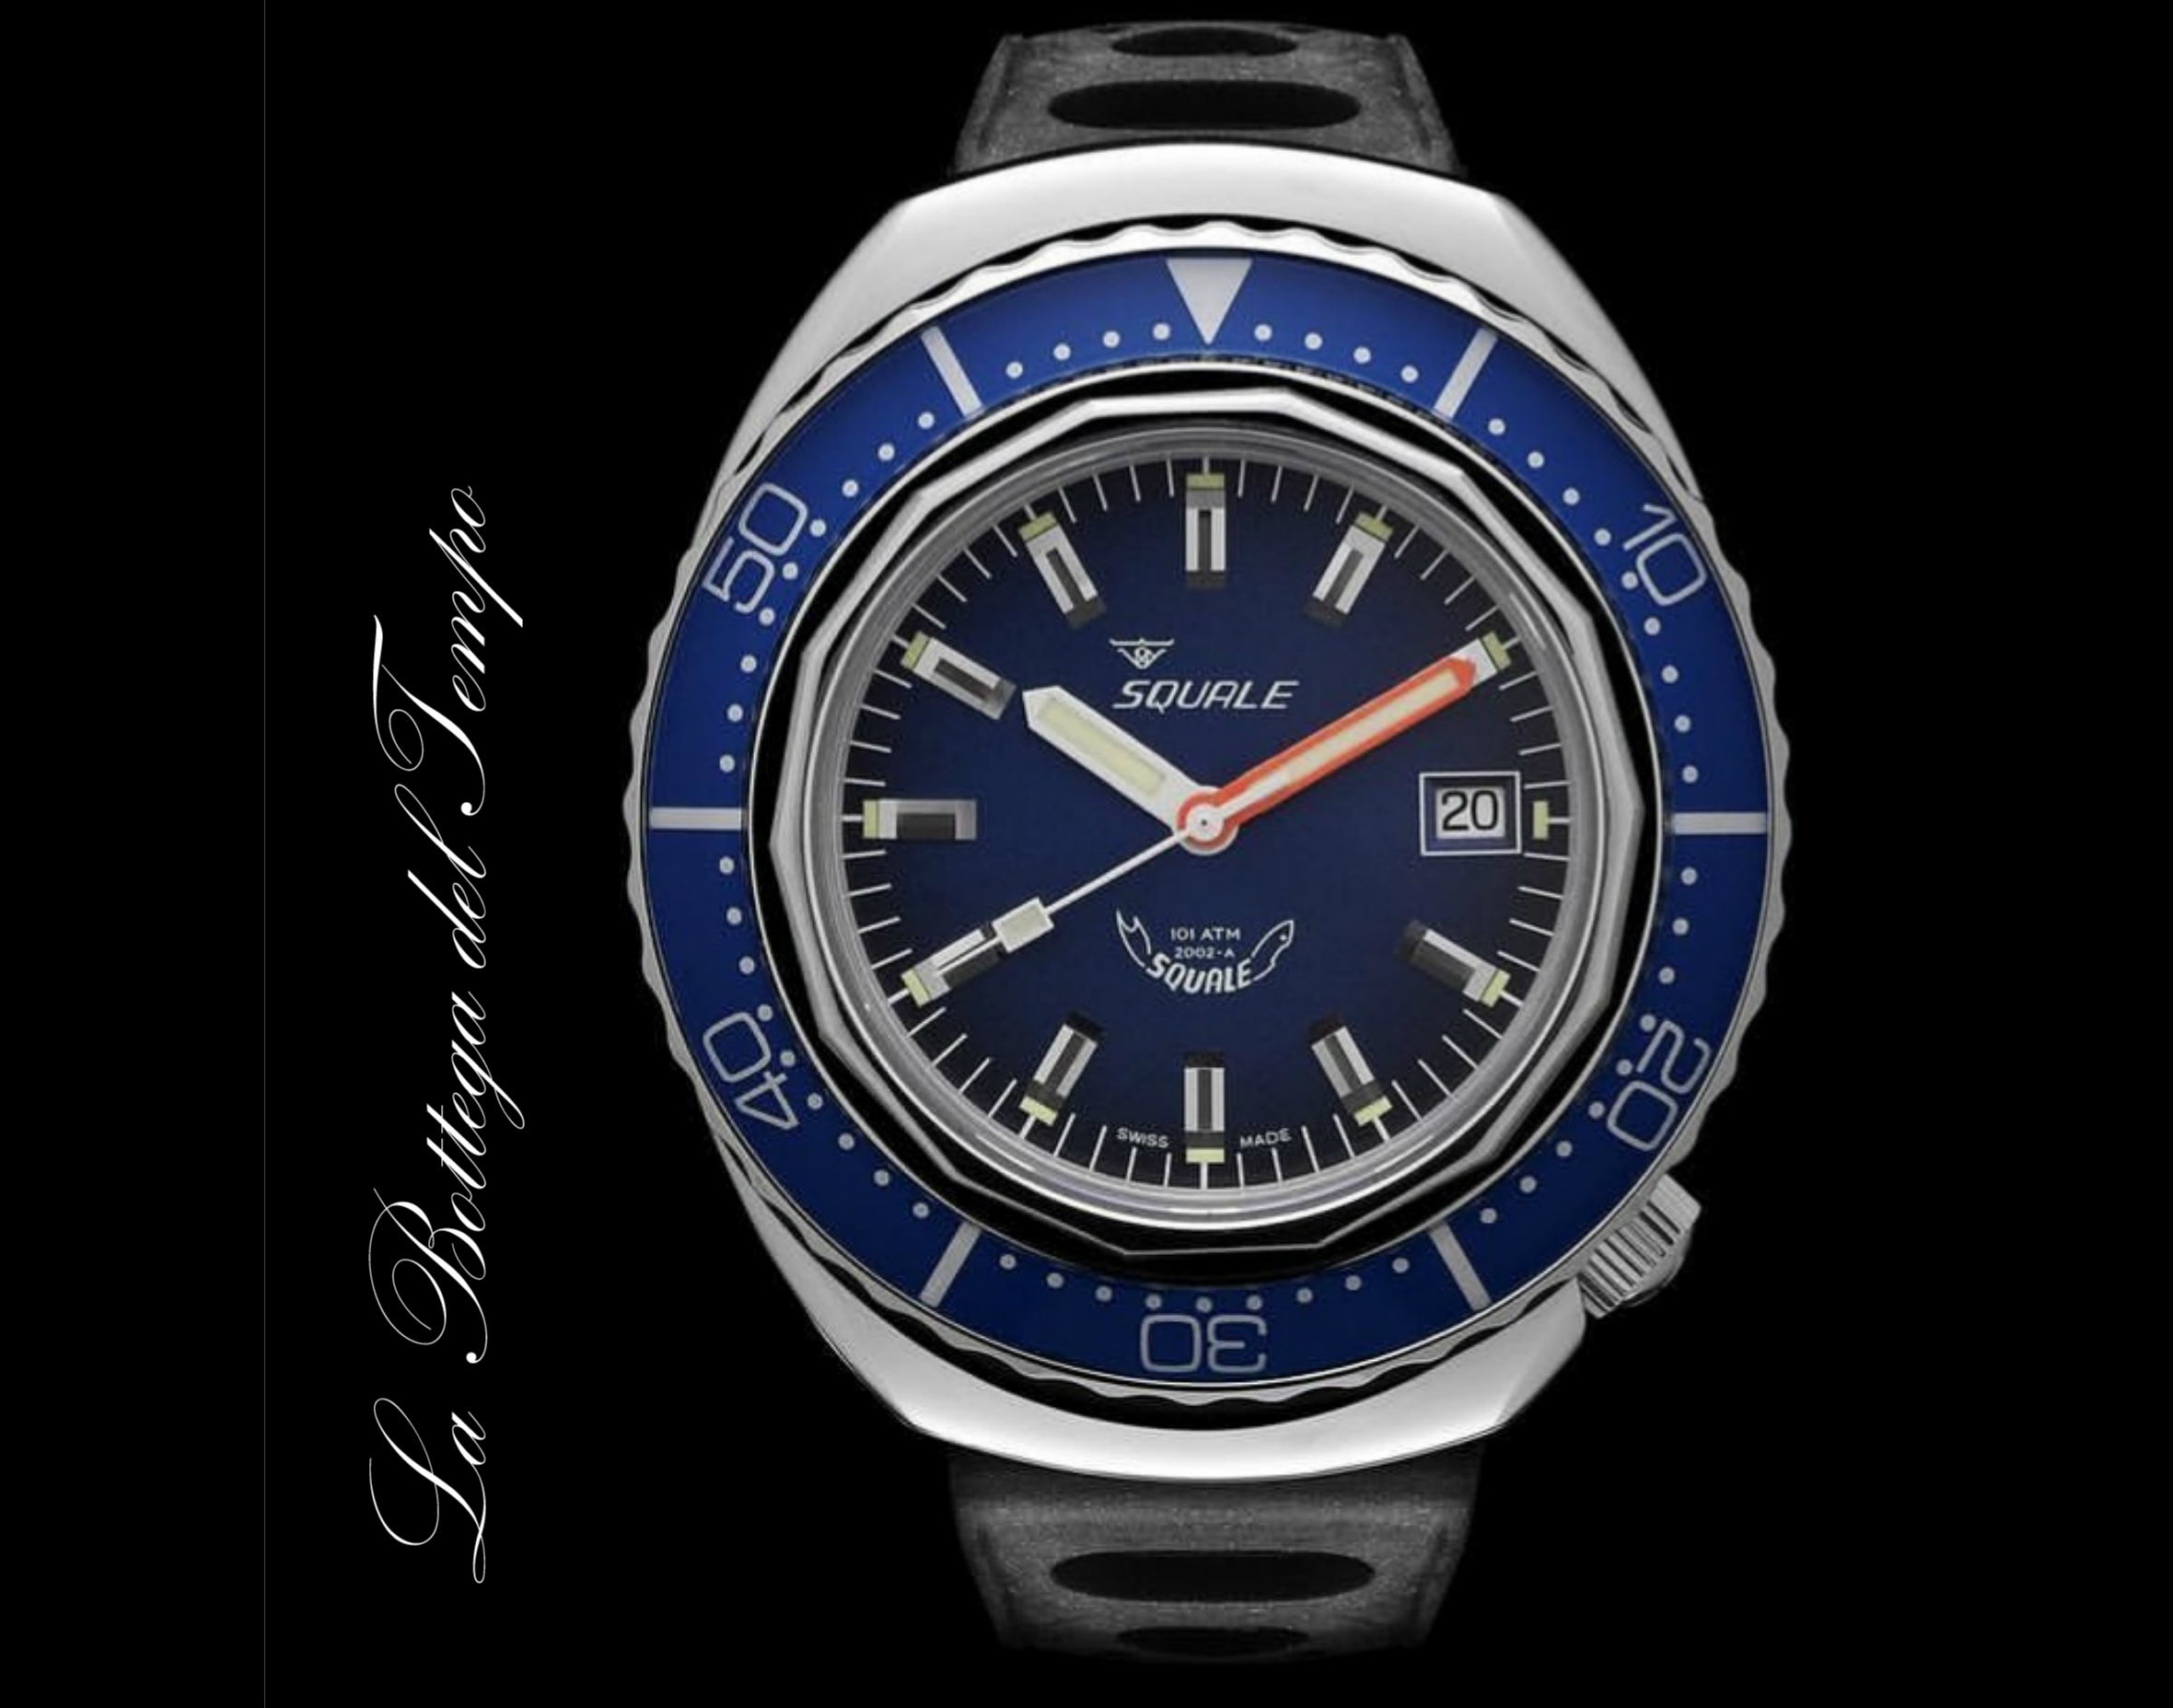 Squale Ref. 2002 – A blue bezel 101 ATM